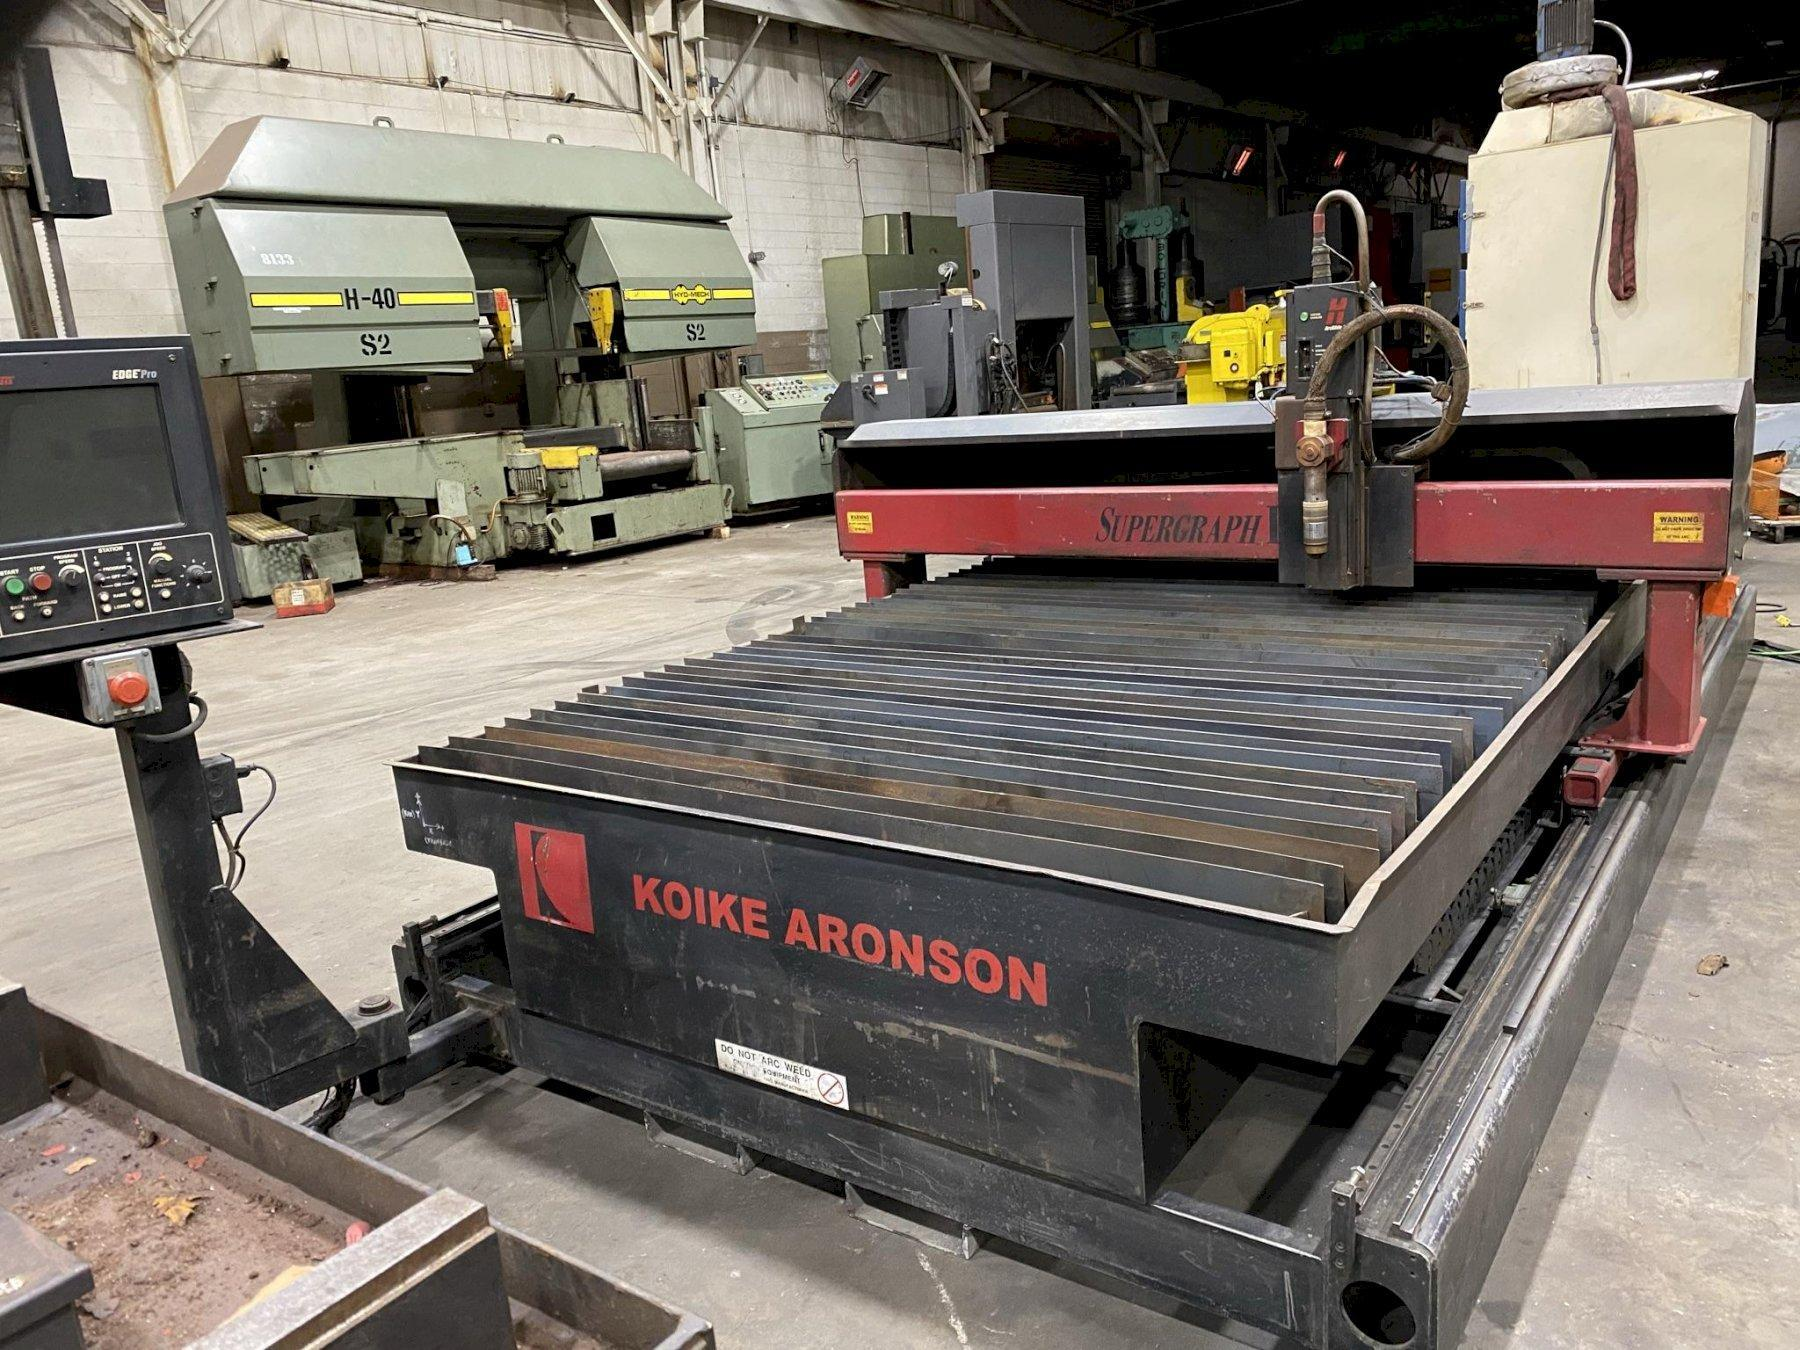 USED KOIKE ARONSON 6' X 10' MODEL SUPERGRAPH IV 260 AMP HIGH DEFINITION CNC PLASMA CUTTER, Stock # 10784, Year 2006